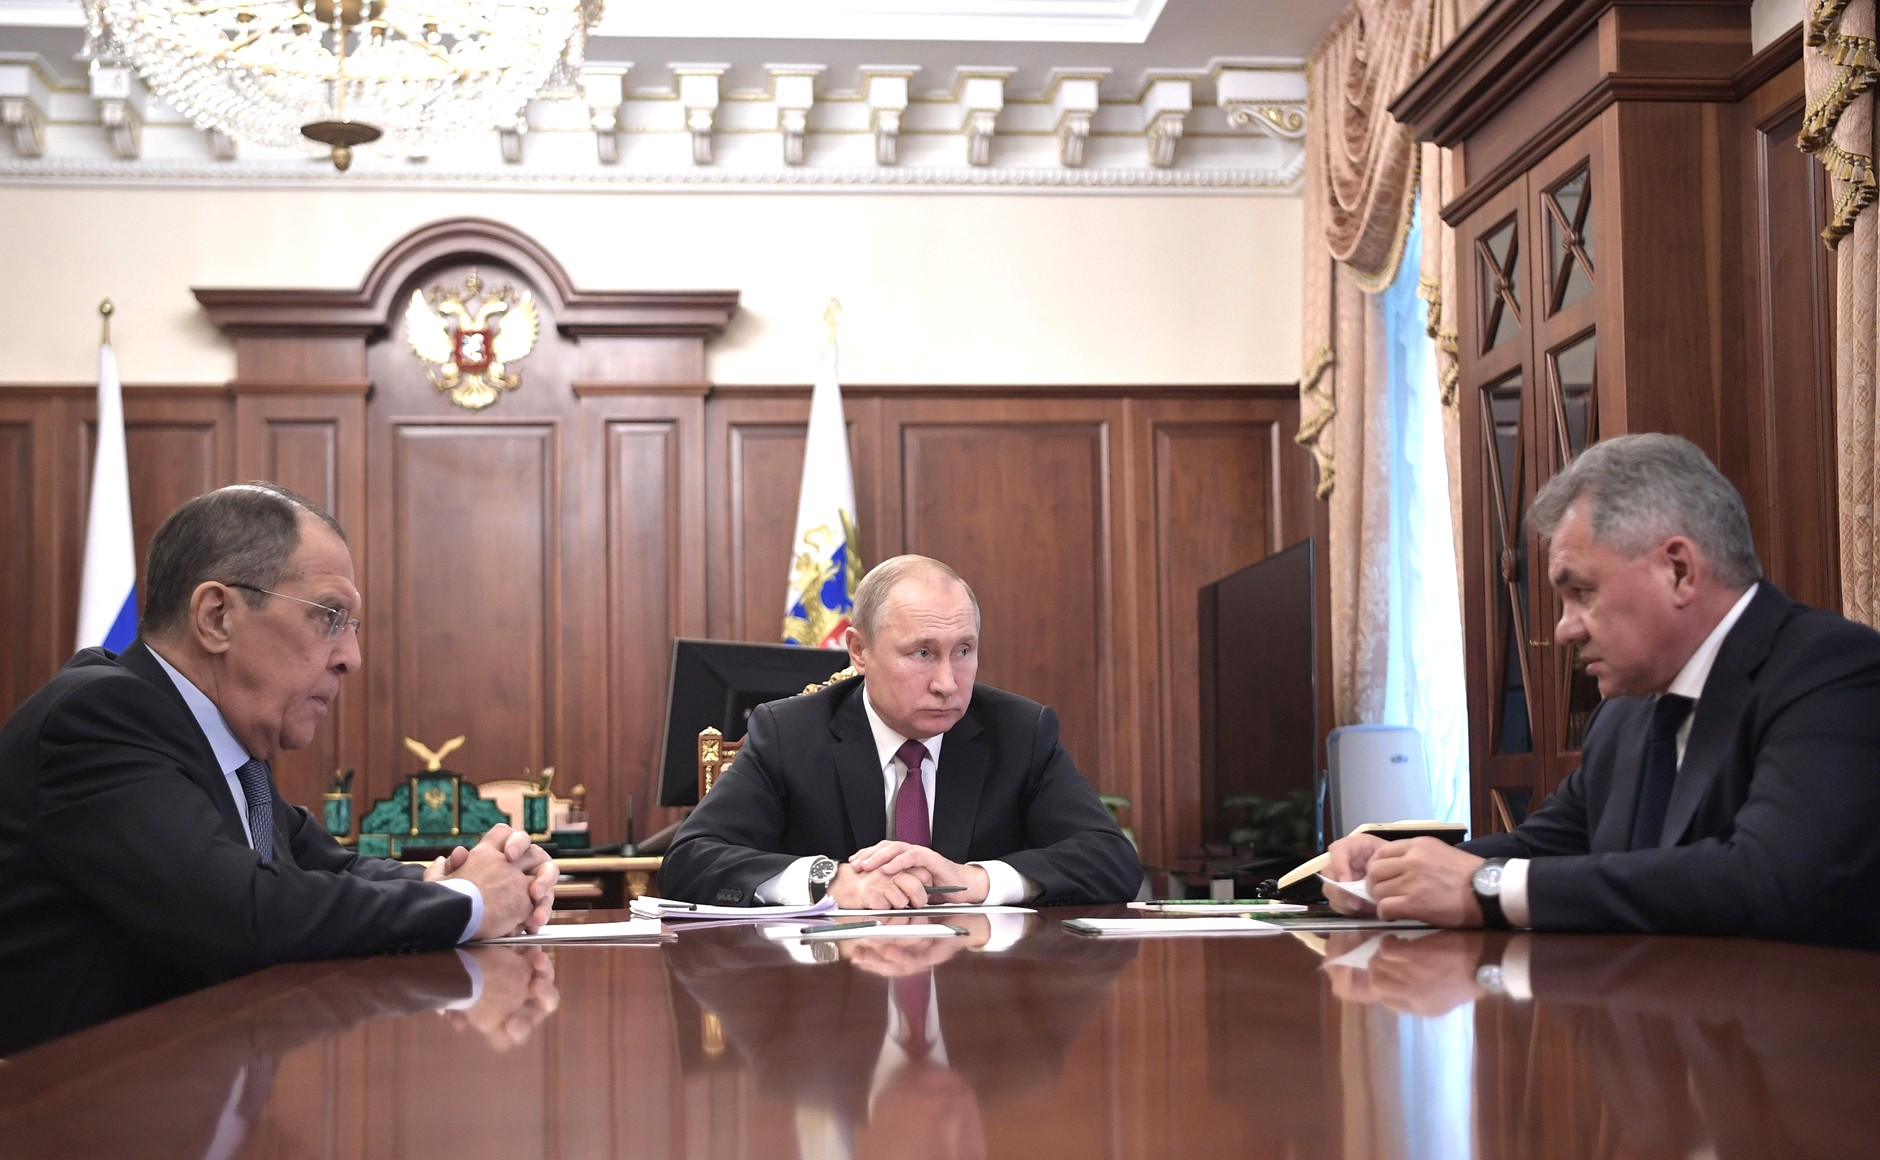 Russian President Vladimir Putin meeting with Foreign Minister Sergei Lavrov (left) and Defence Minister Sergei Shoigu on 2 February 2019. Photo Credit:  http://en.kremlin.ru/events/president/news/59763